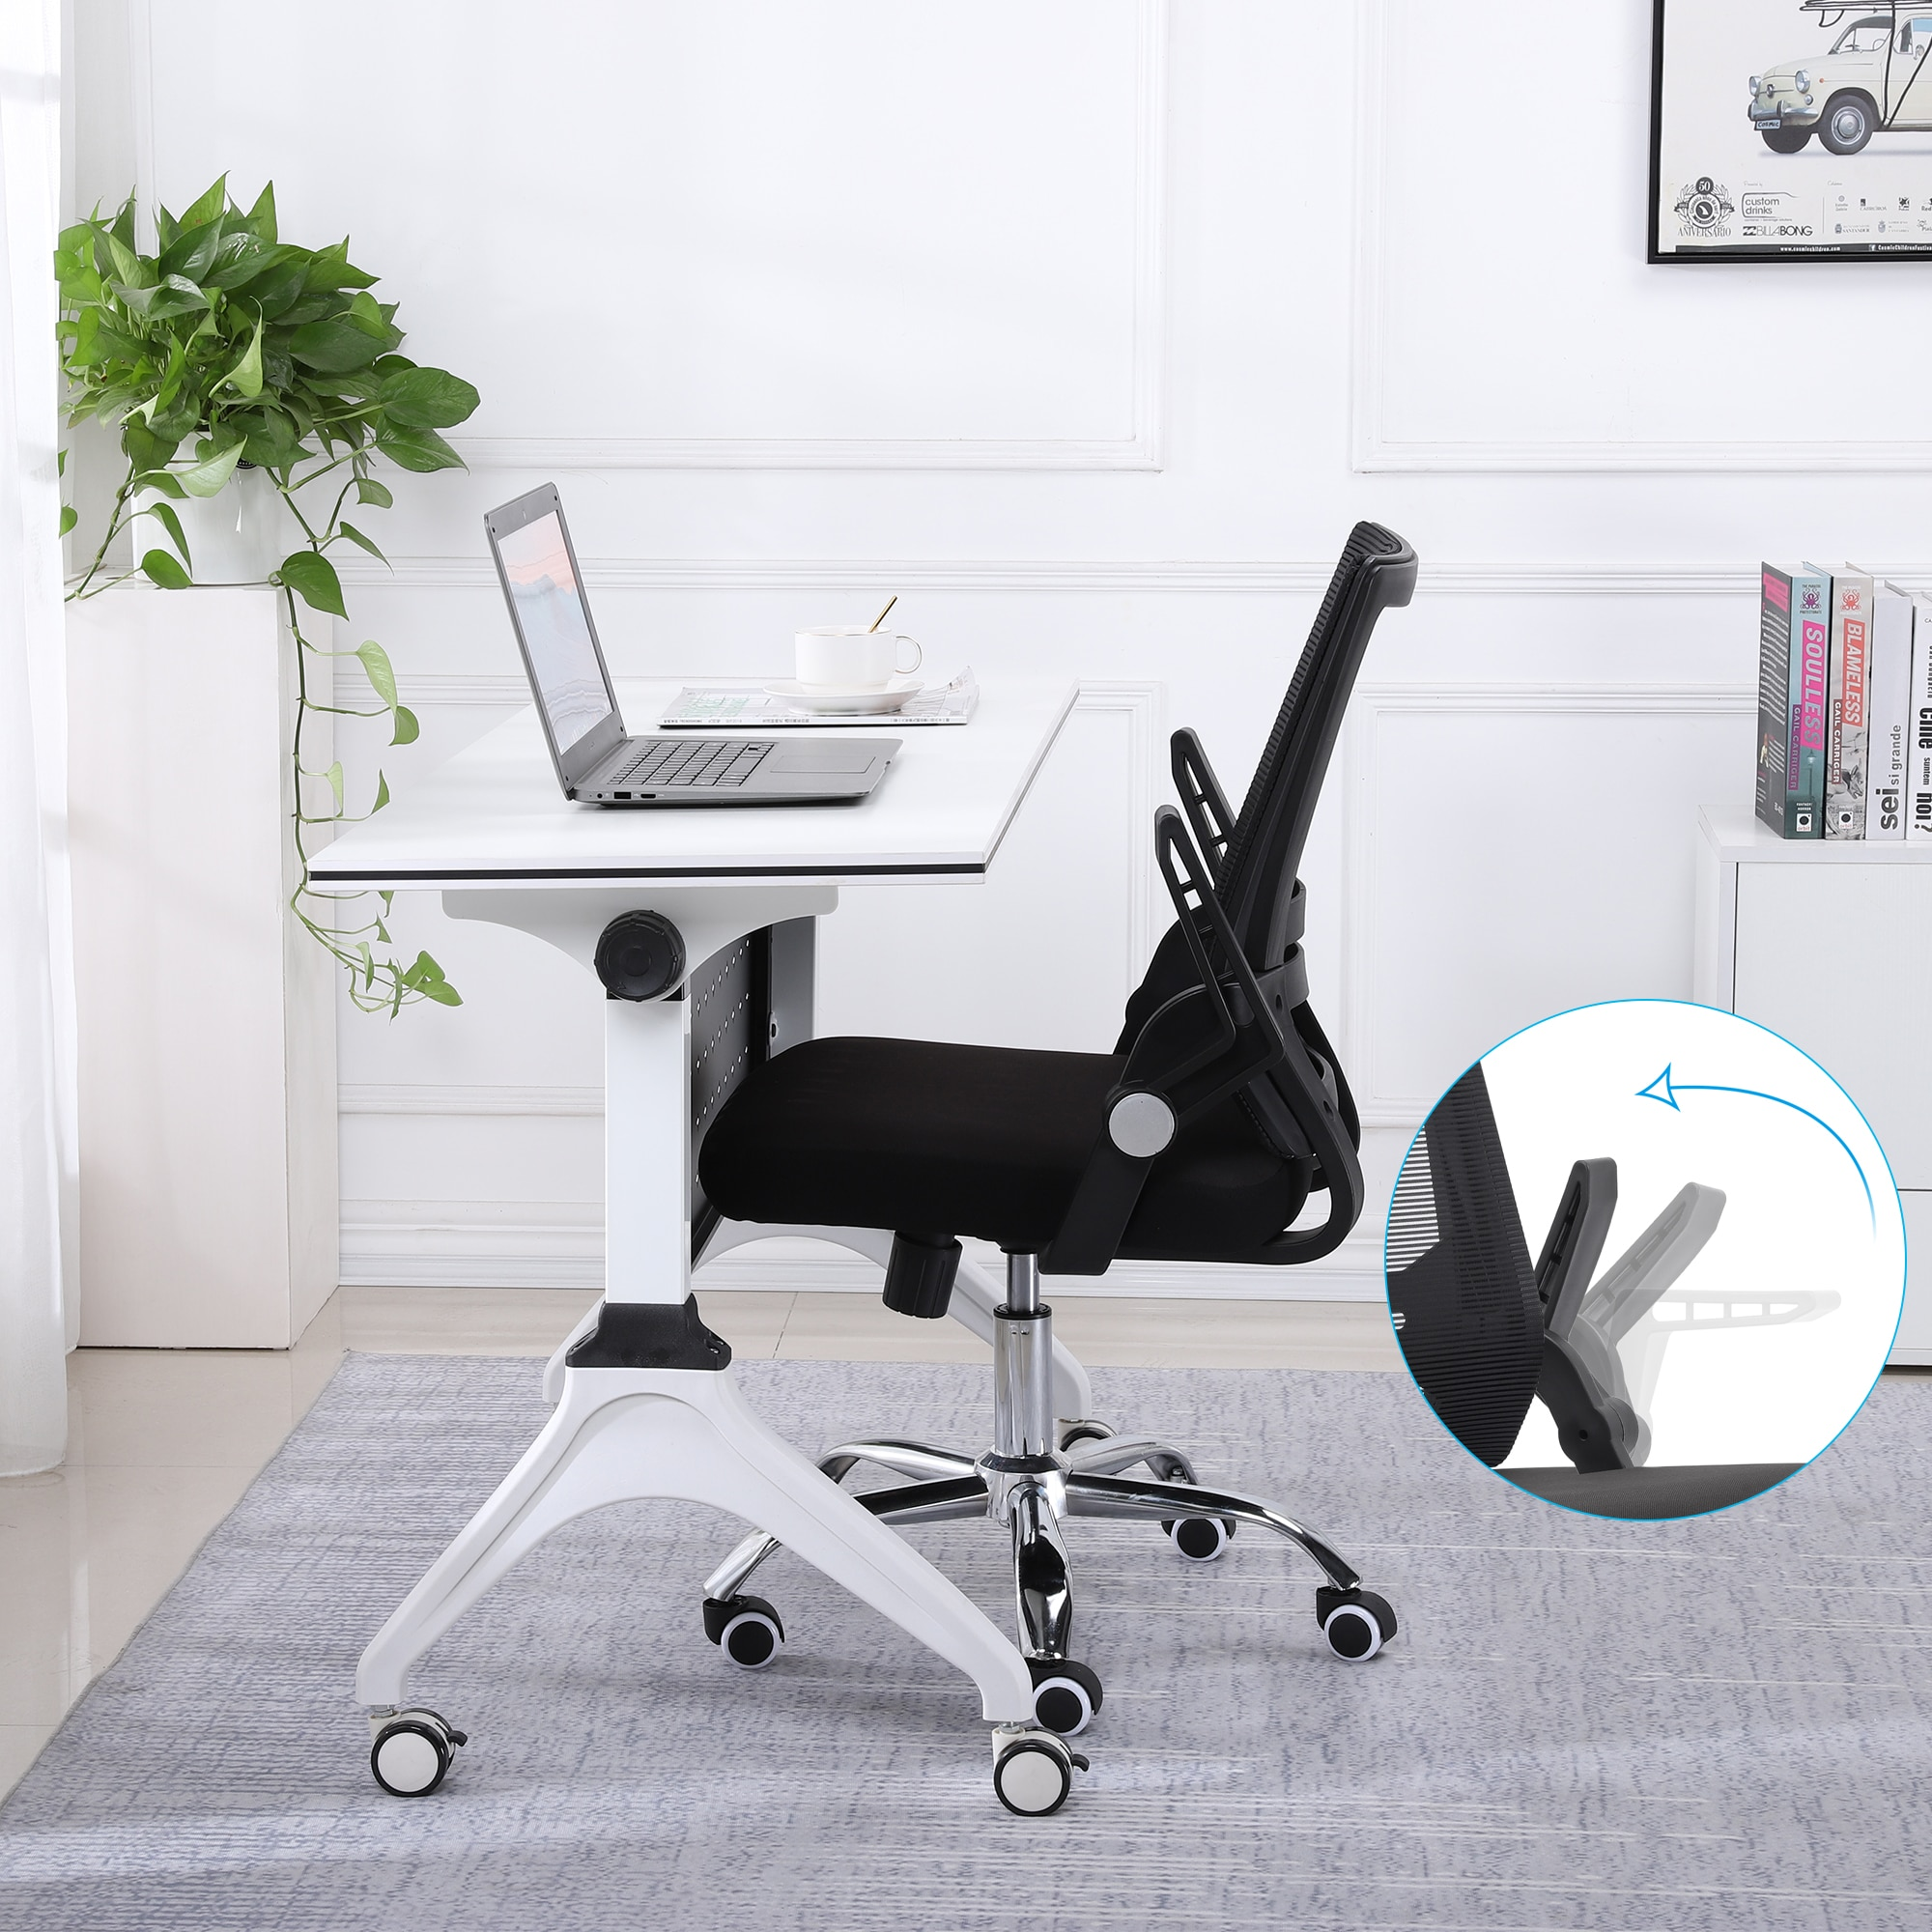 Hb8e43c2ba07248f3b212733471f44f7bz - Sigtua Swiveling Desk Chair Breathable Height-adjustable PC Chair Ergonomic Executive Black Computer Office Chair